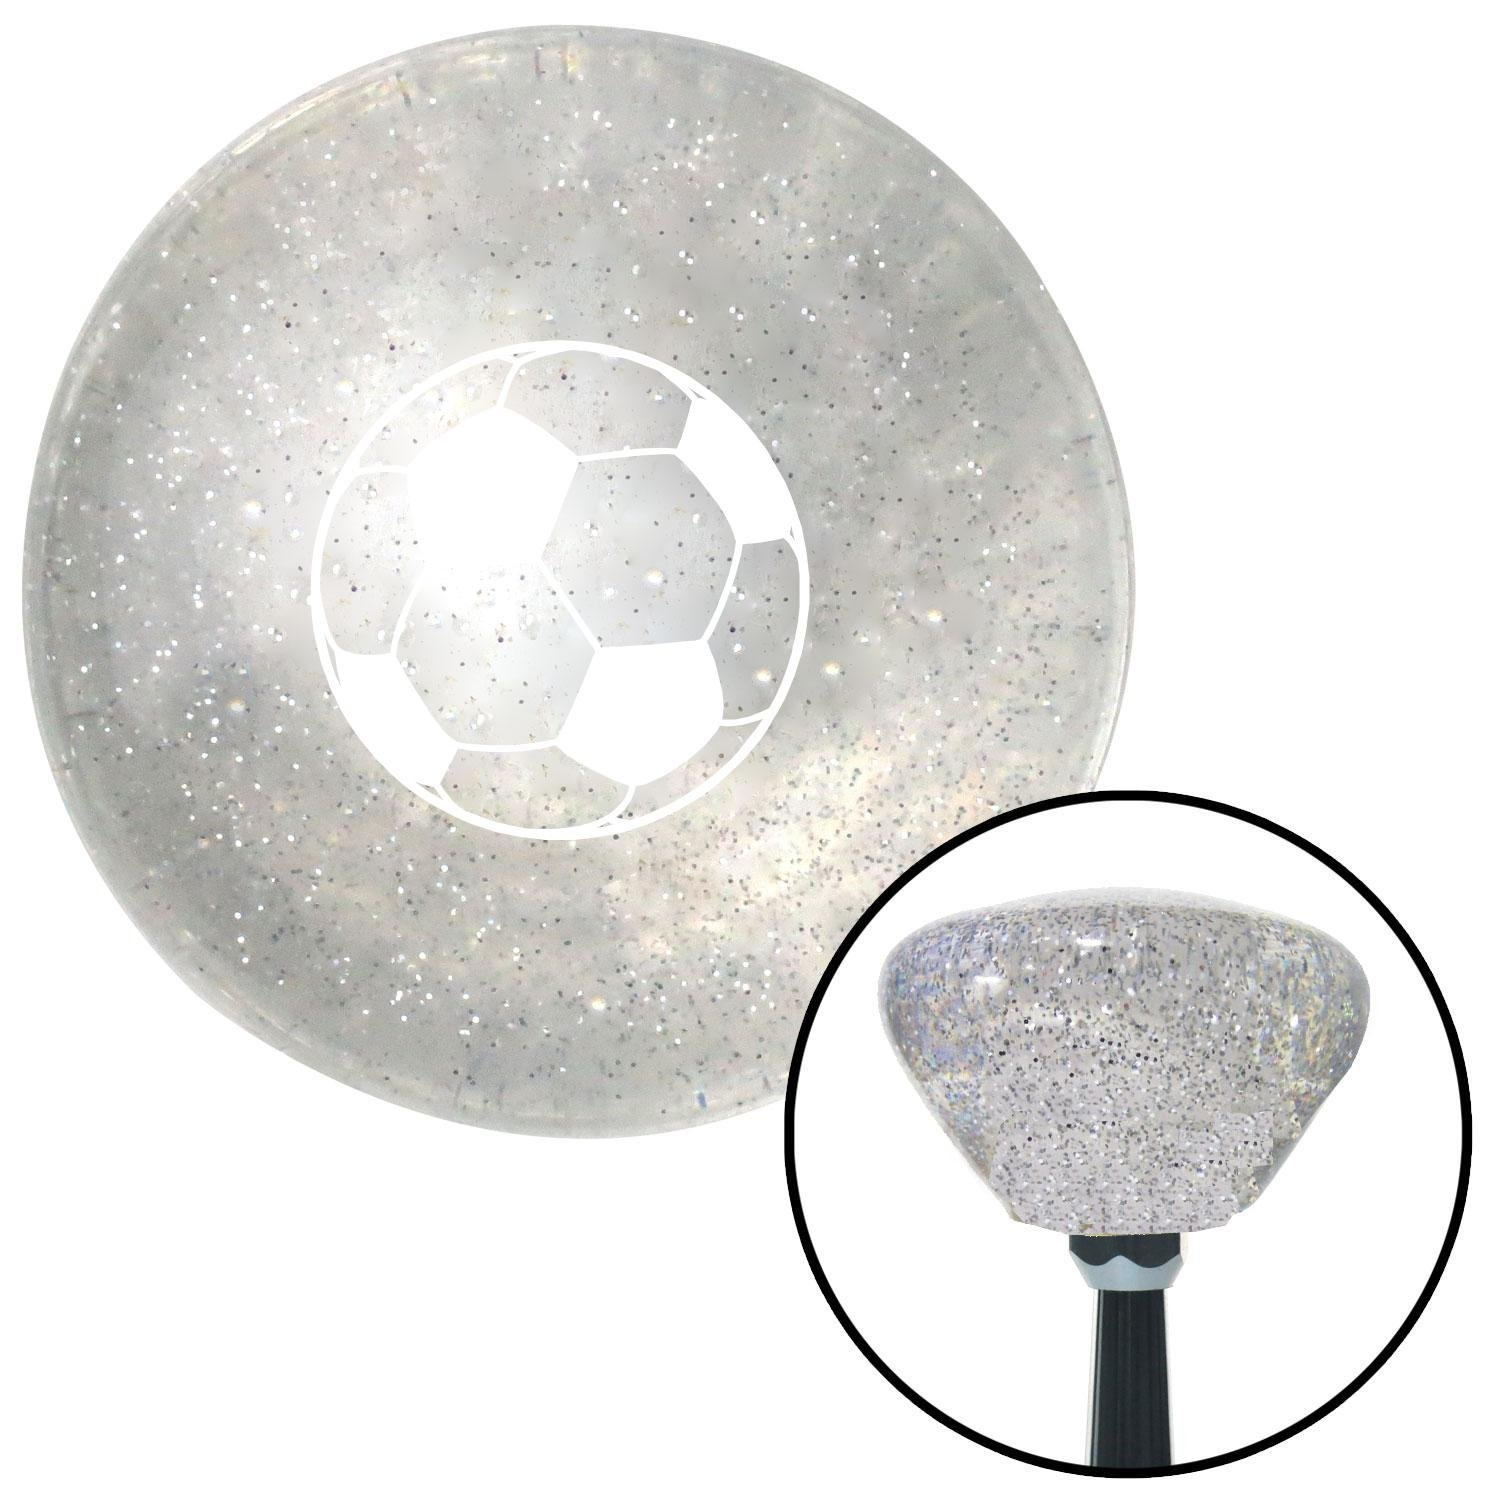 White Soccer Ball American Shifter 163442 Clear Retro Metal Flake Shift Knob with M16 x 1.5 Insert